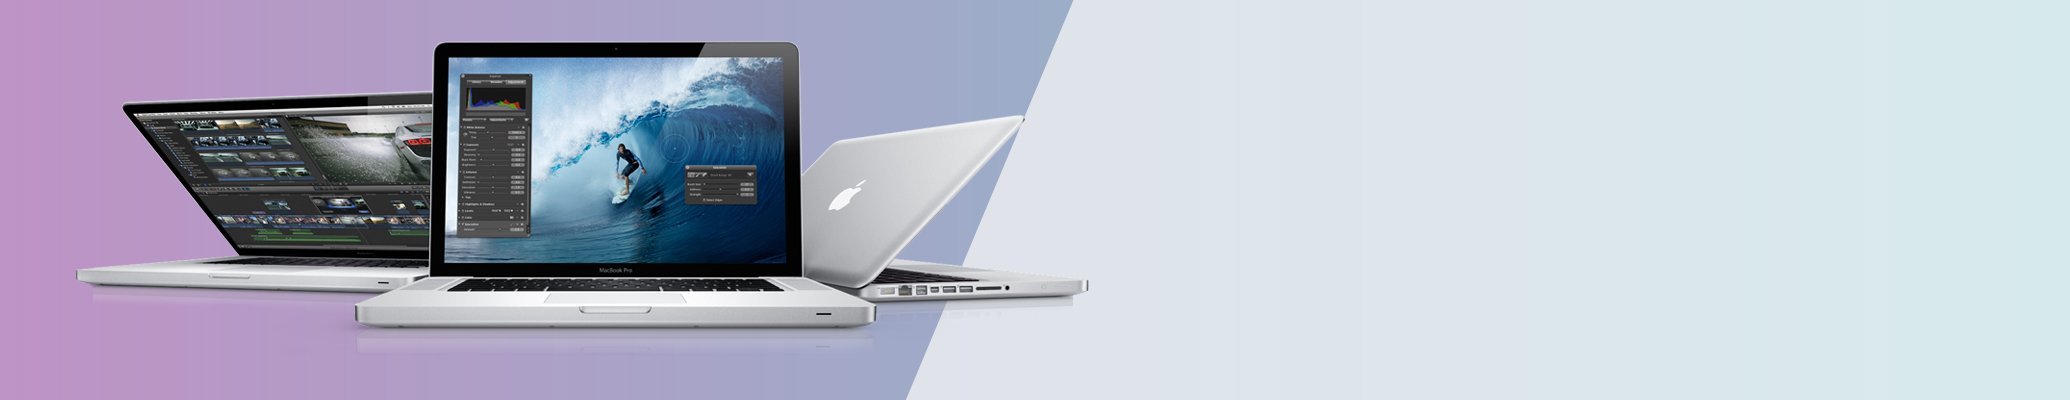 Apple MacBook Air 11 Mid 2013 (арт.17802)